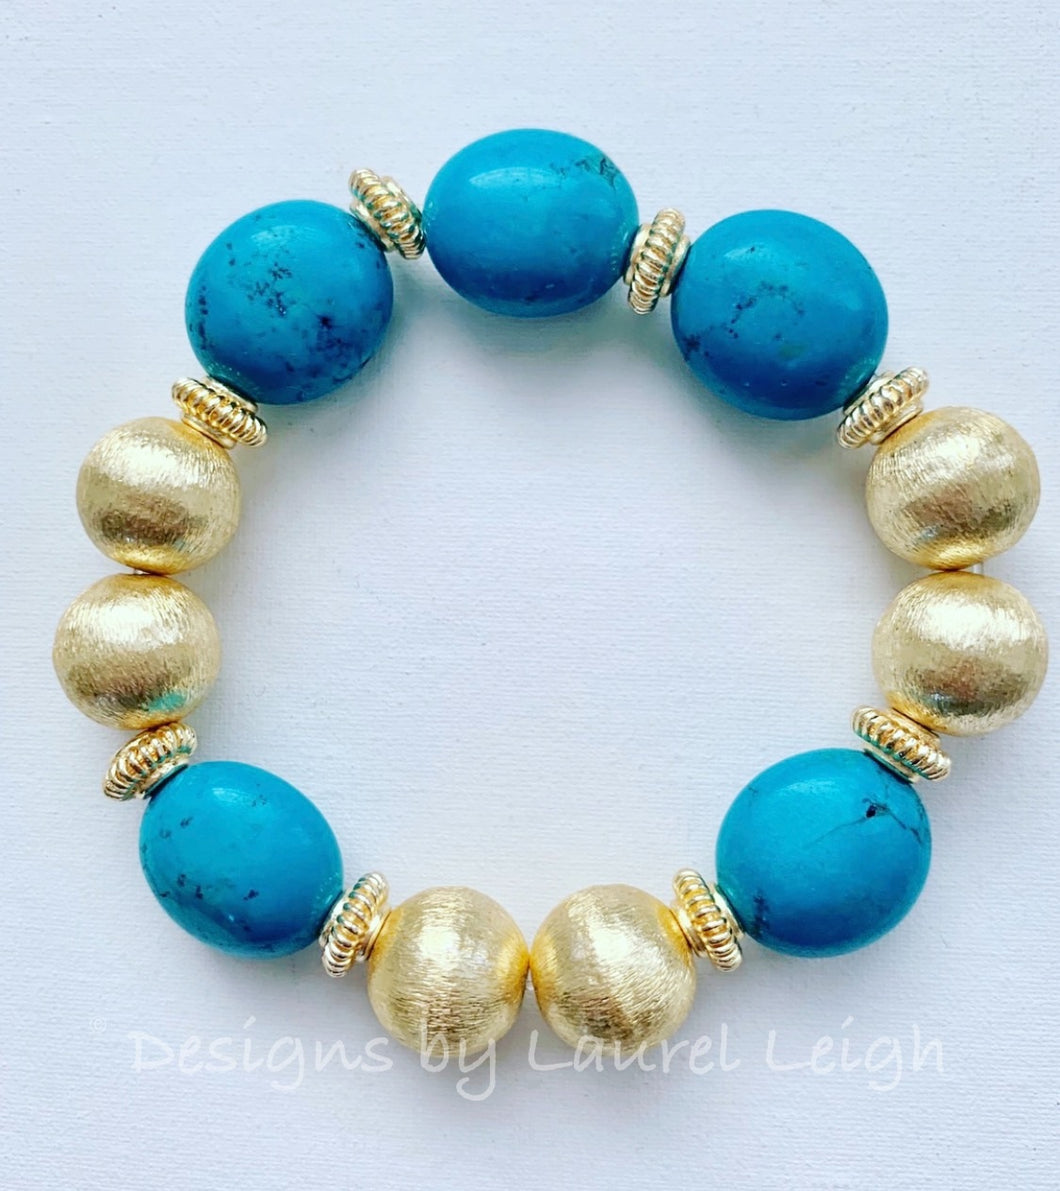 Turquoise and Gold Chunky Beaded Bracelet - Ginger jar